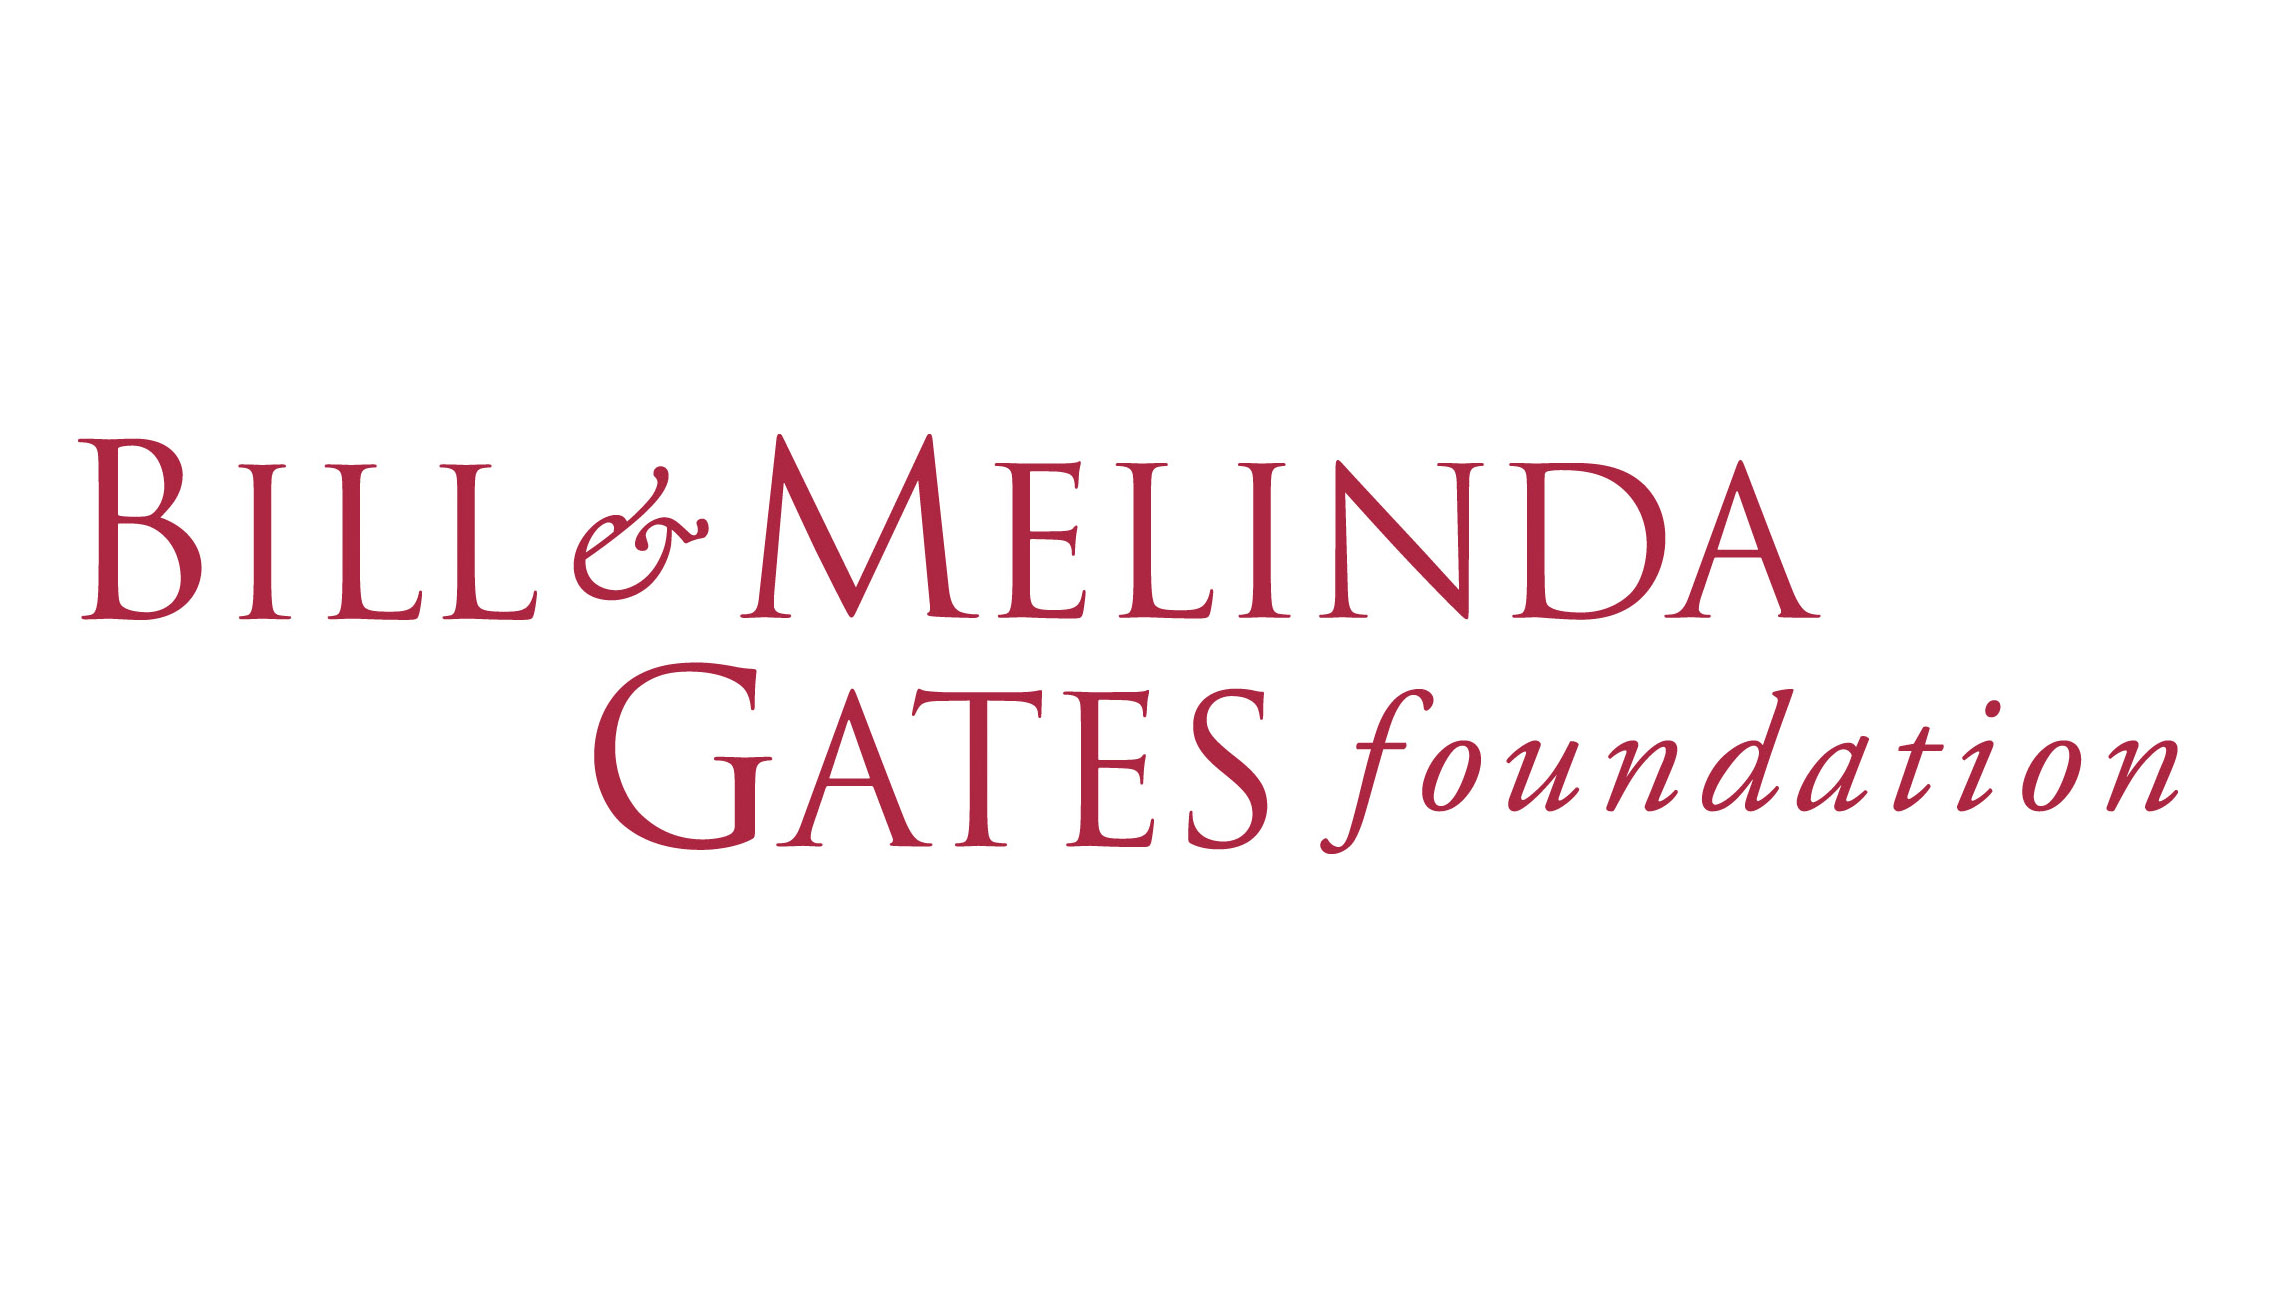 The world's largest private foundation